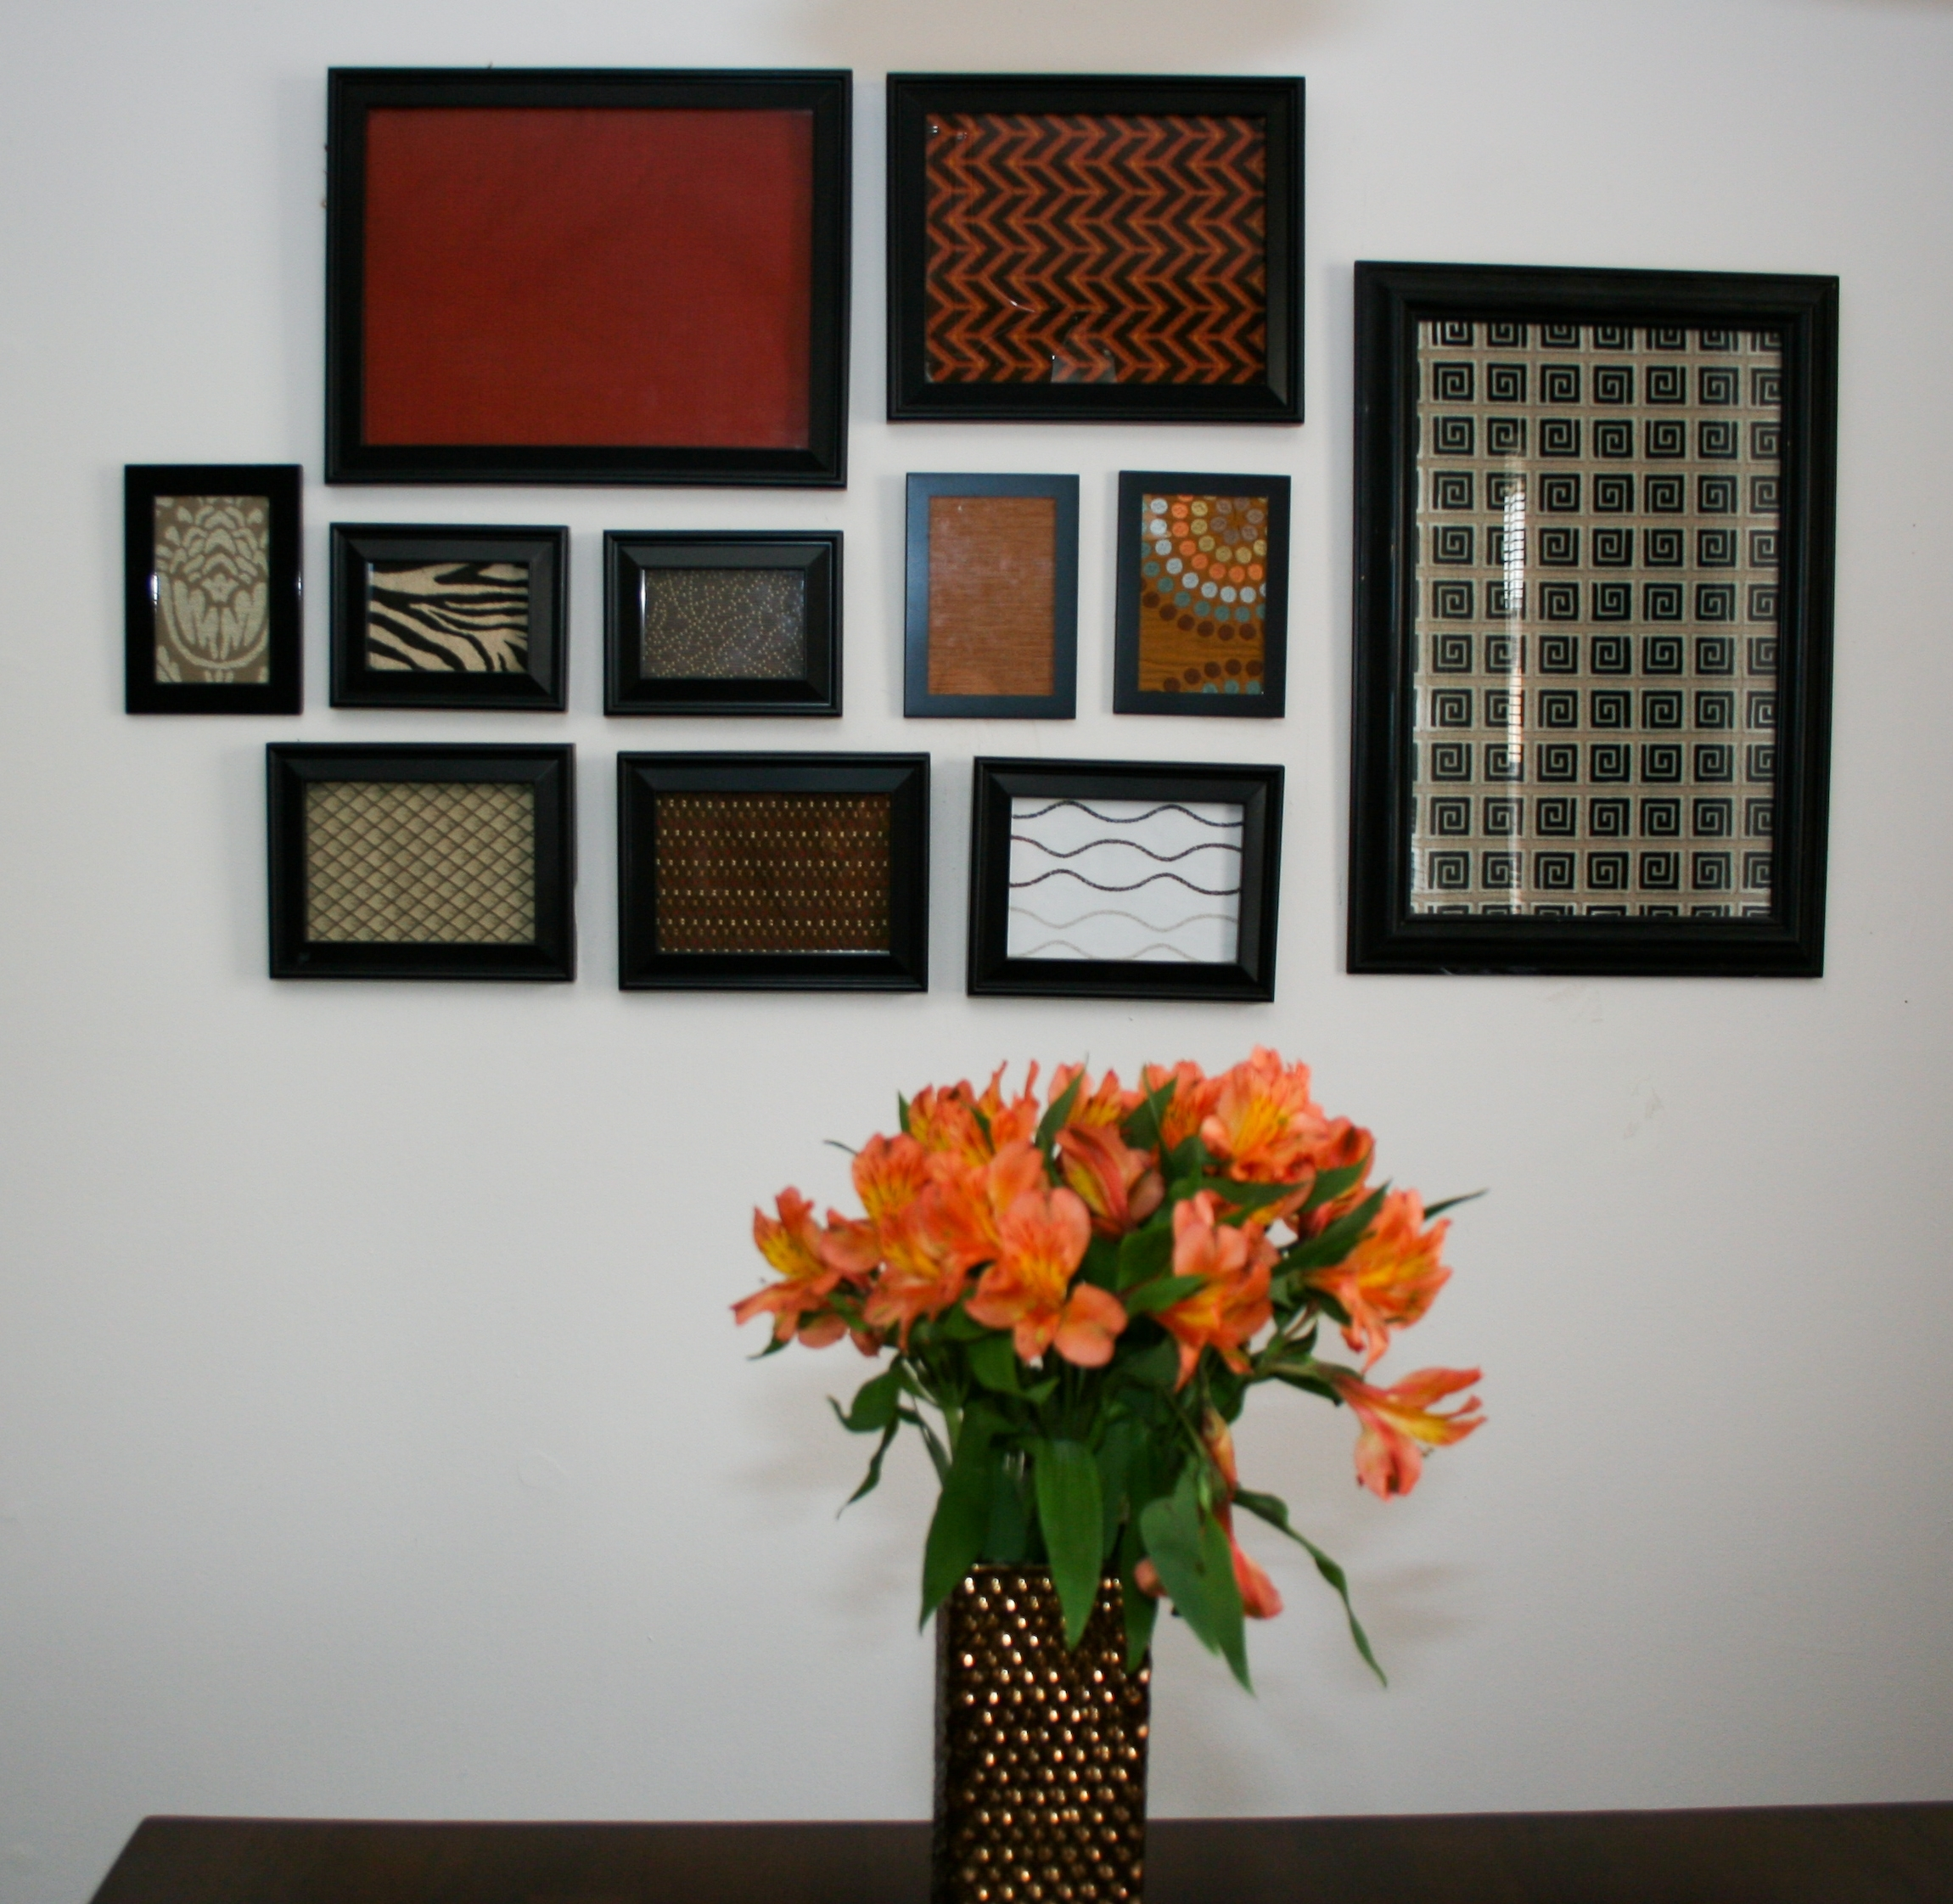 Wall Art Designs: Framed Fabric Wall Art Making Panels Blue For Best And Newest Framed Textile Wall Art (View 12 of 15)